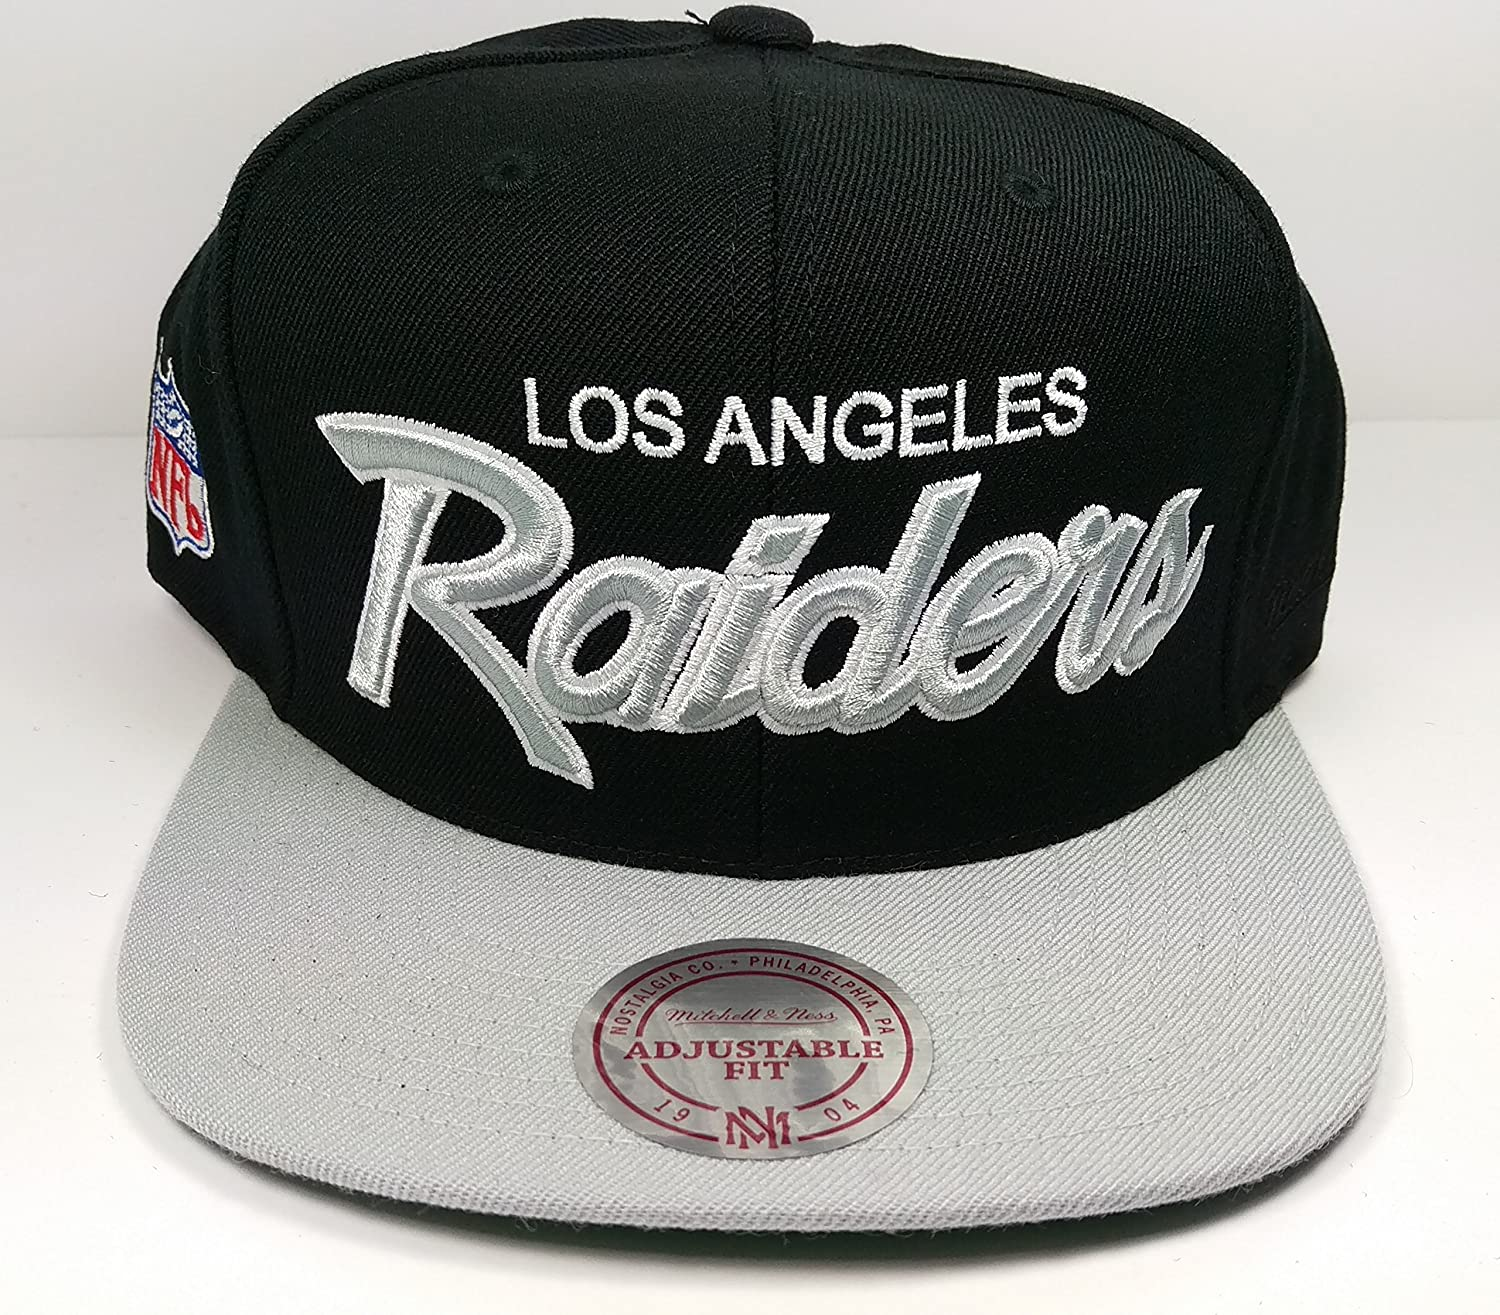 582e1ba45f17d Mitchell & Ness Los Angeles Raiders Black and White Vintage Script N.W.A  Adjustable Snapback Hat NFL